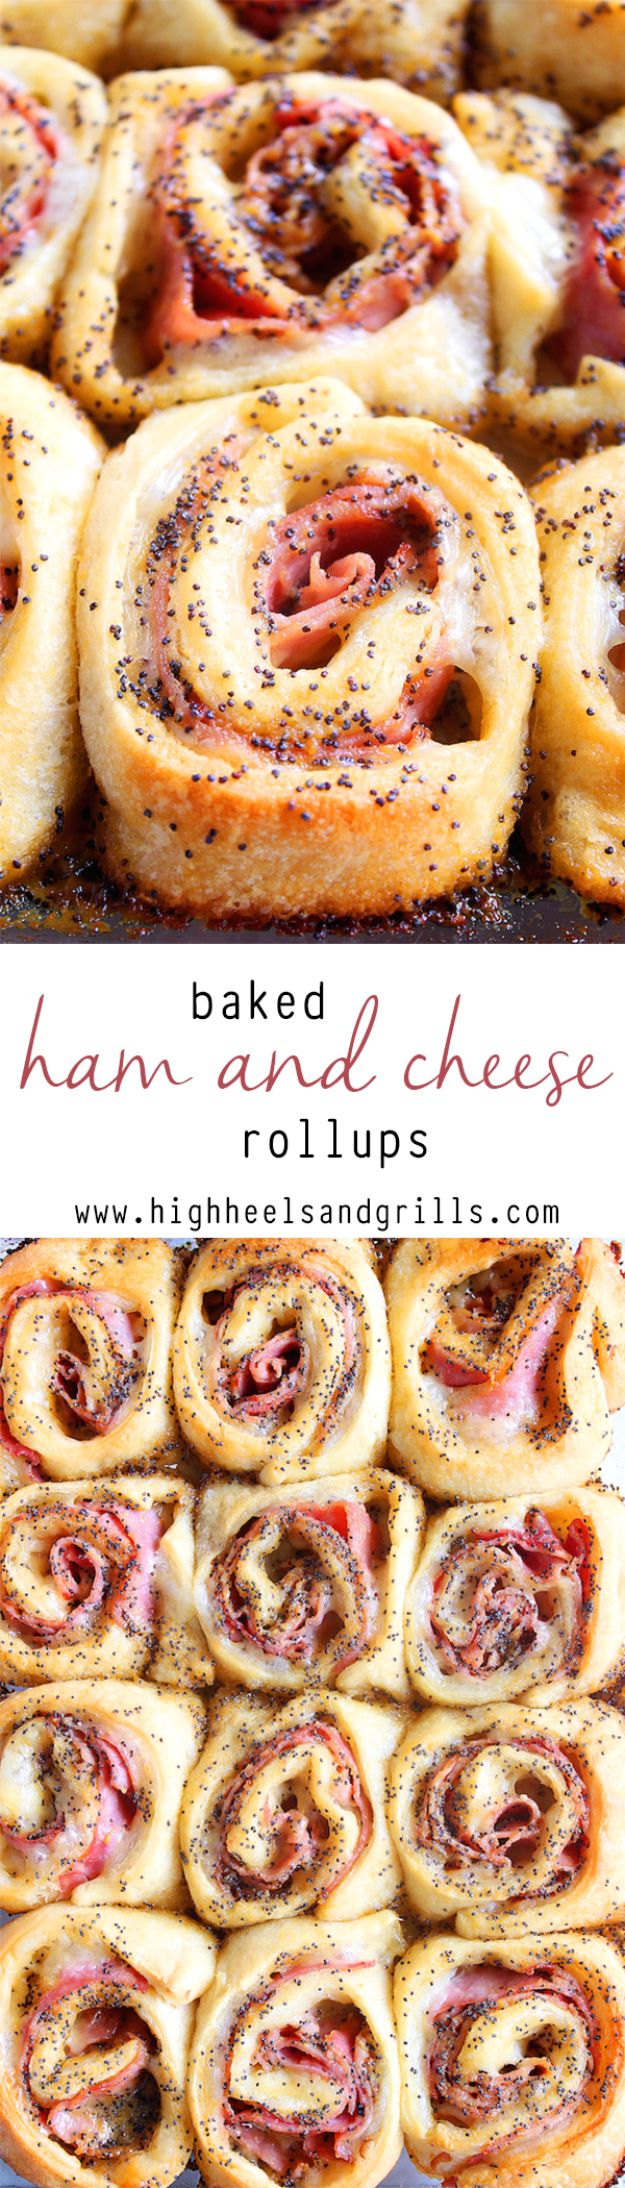 Best Brunch Recipes - Baked Ham and Cheese Rollups - Eggs, Pancakes, Waffles, Casseroles, Vegetable Dishes and Side, Potato Recipe Ideas for Brunches - Serve A Crowd and Family with the versions of Eggs Benedict, Mimosas, Muffins and Pastries, Desserts - Make Ahead , Slow Cooler and Healthy Casserole Recipes #brunch #breakfast #recipes